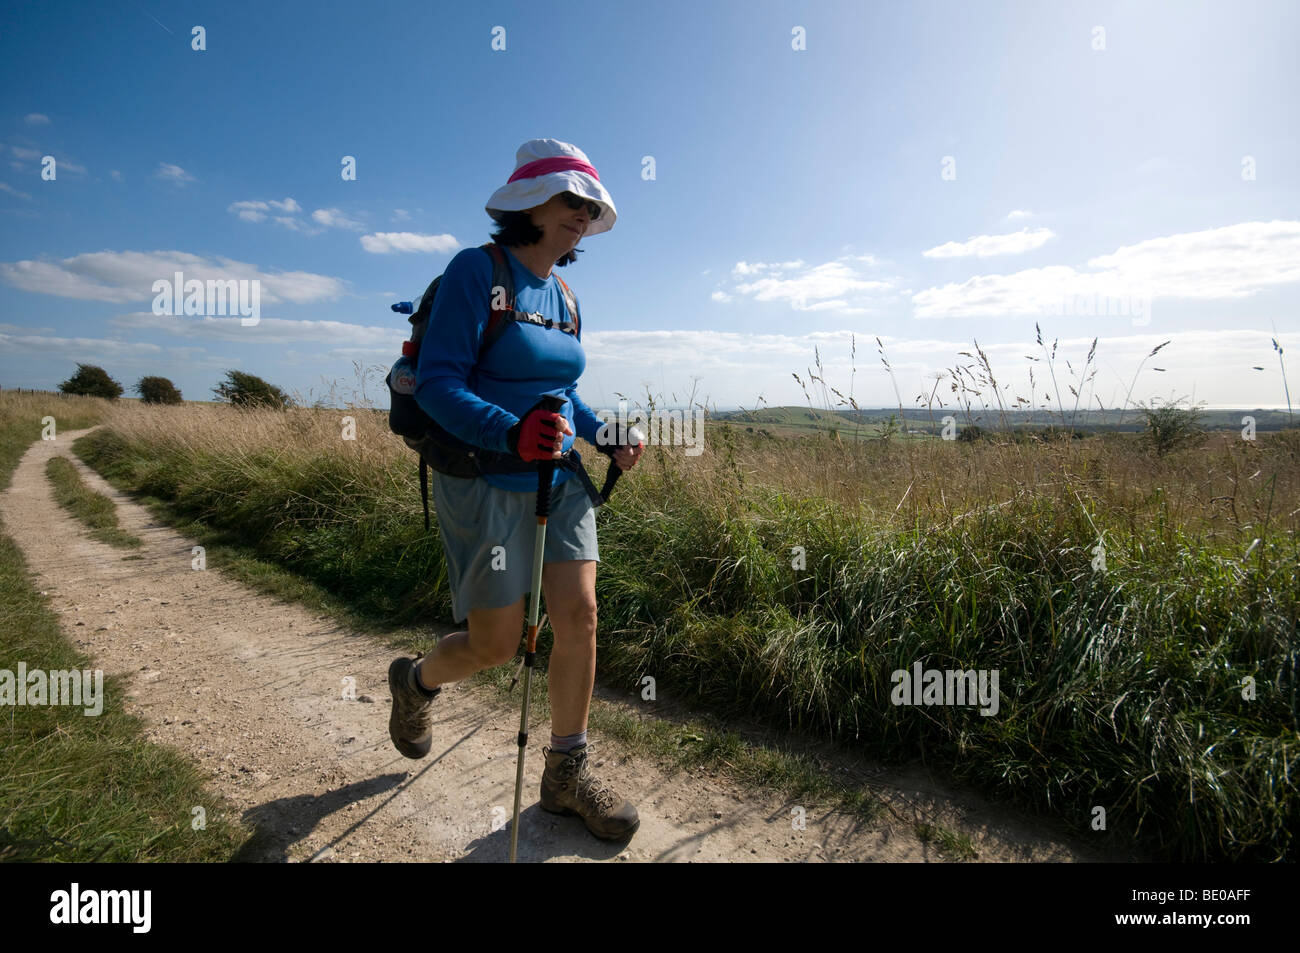 Walkers on the South Downs Sussex Downs use pathway - Stock Image